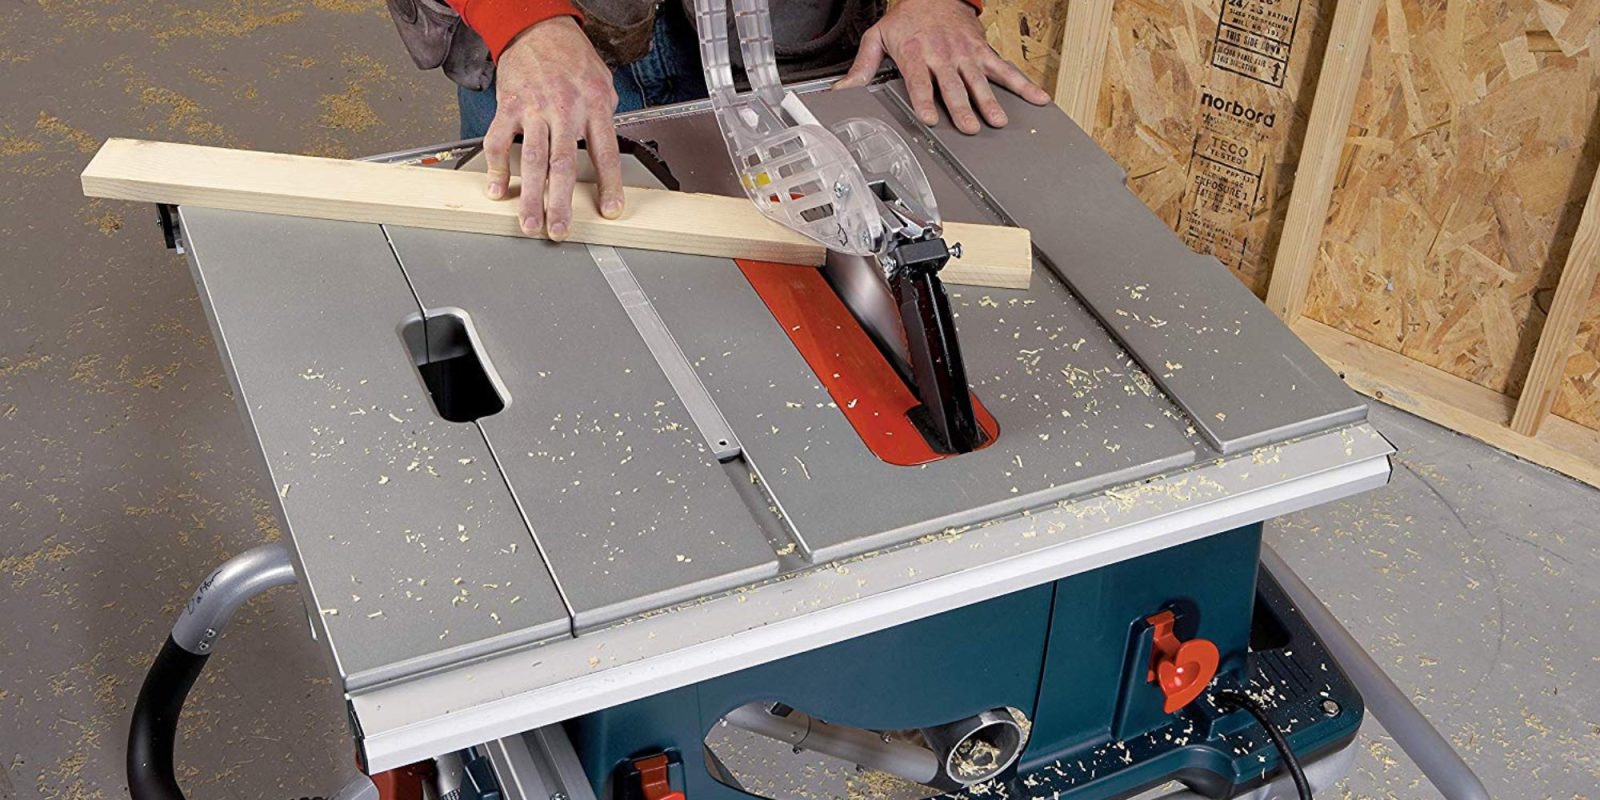 Bosch's 10-inch Table Saw falls to new Amazon low of $452 (Reg. $599)